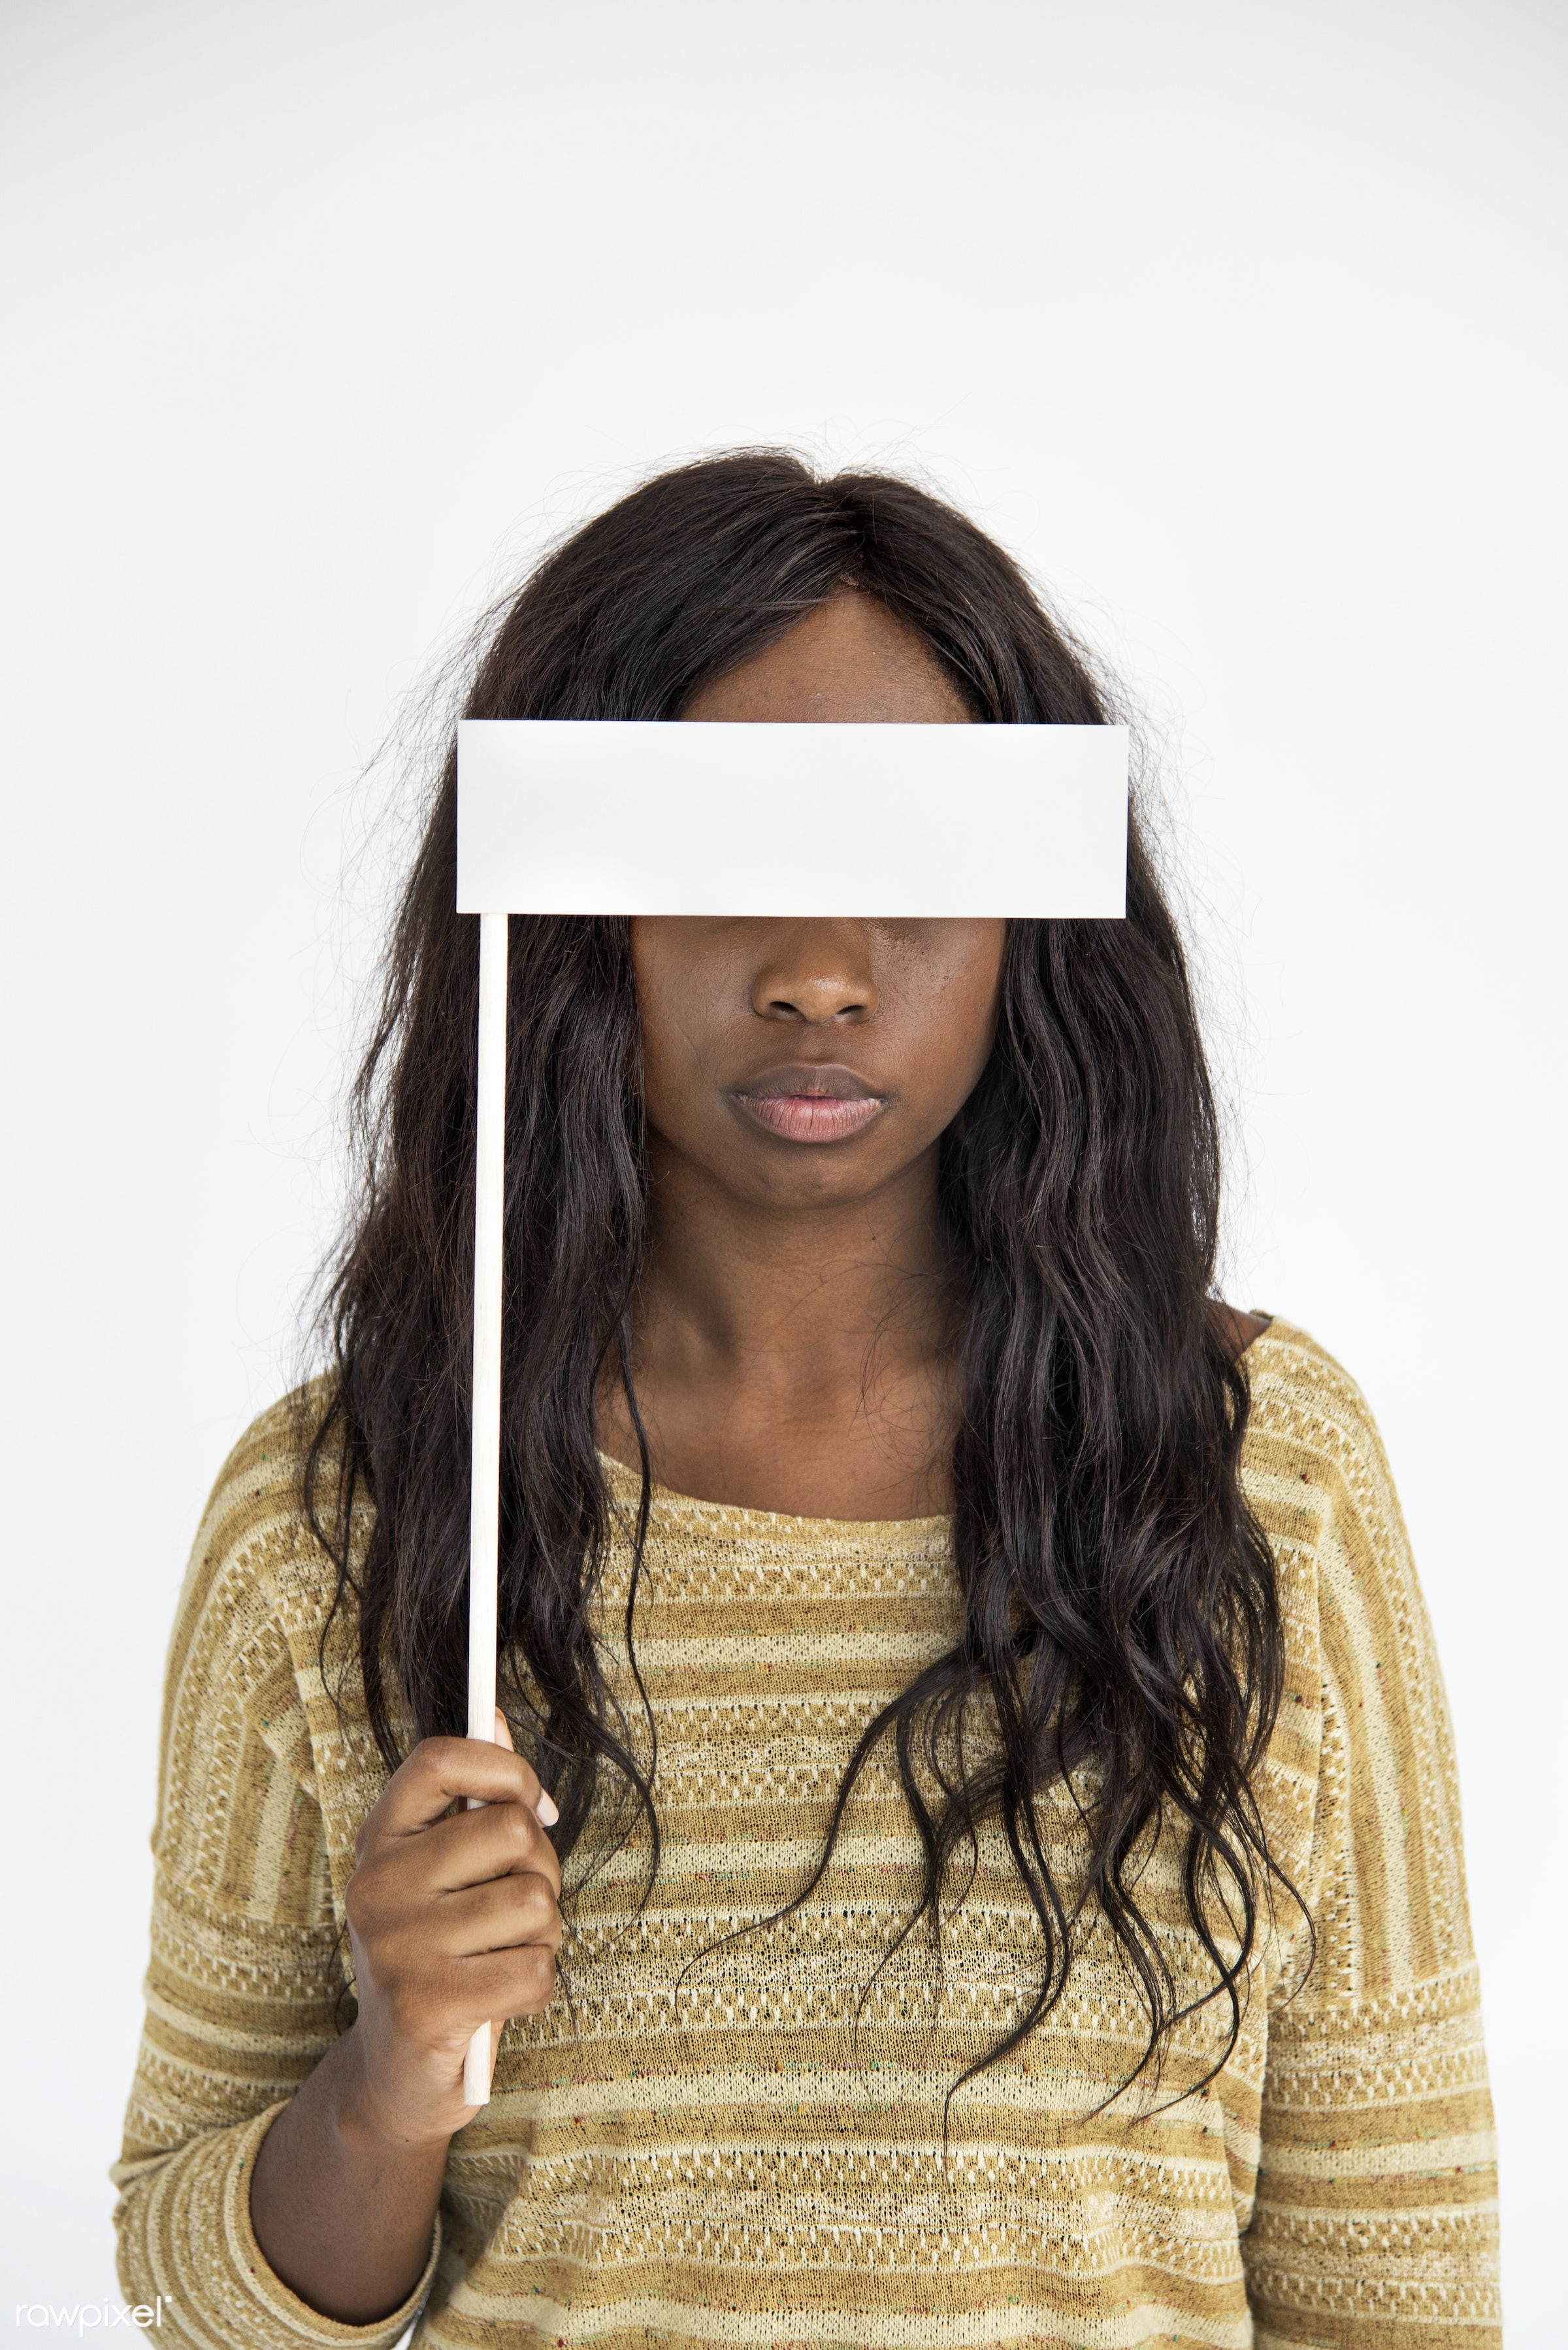 expression, person, mystery, holding, normal, daydreaming, woman, lifestyle, black, gesticulation, isolated, african descent...